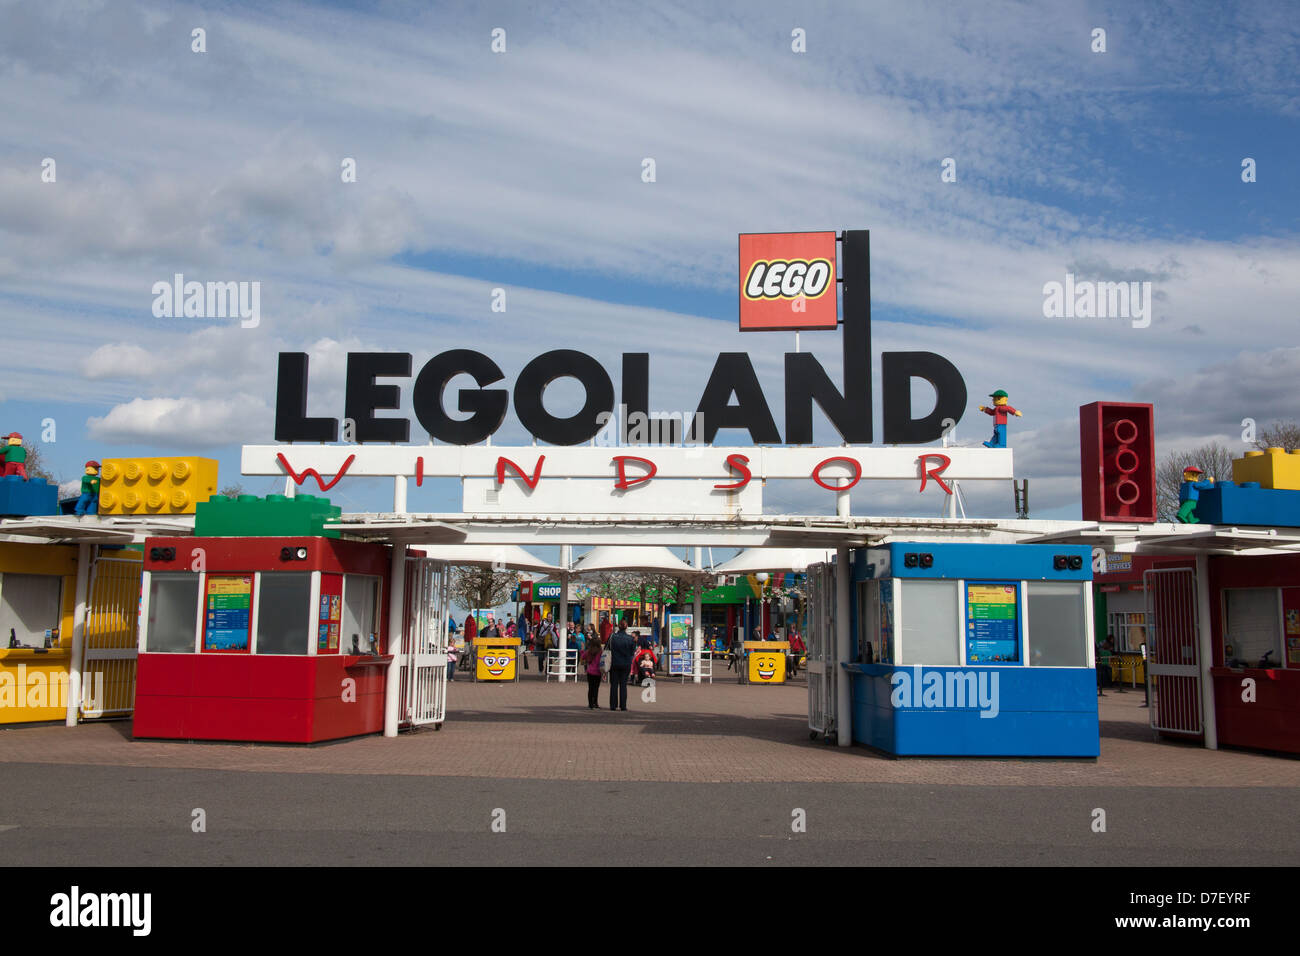 Legoland, Windsor, Berkshire, United Kingdom Stock Photo